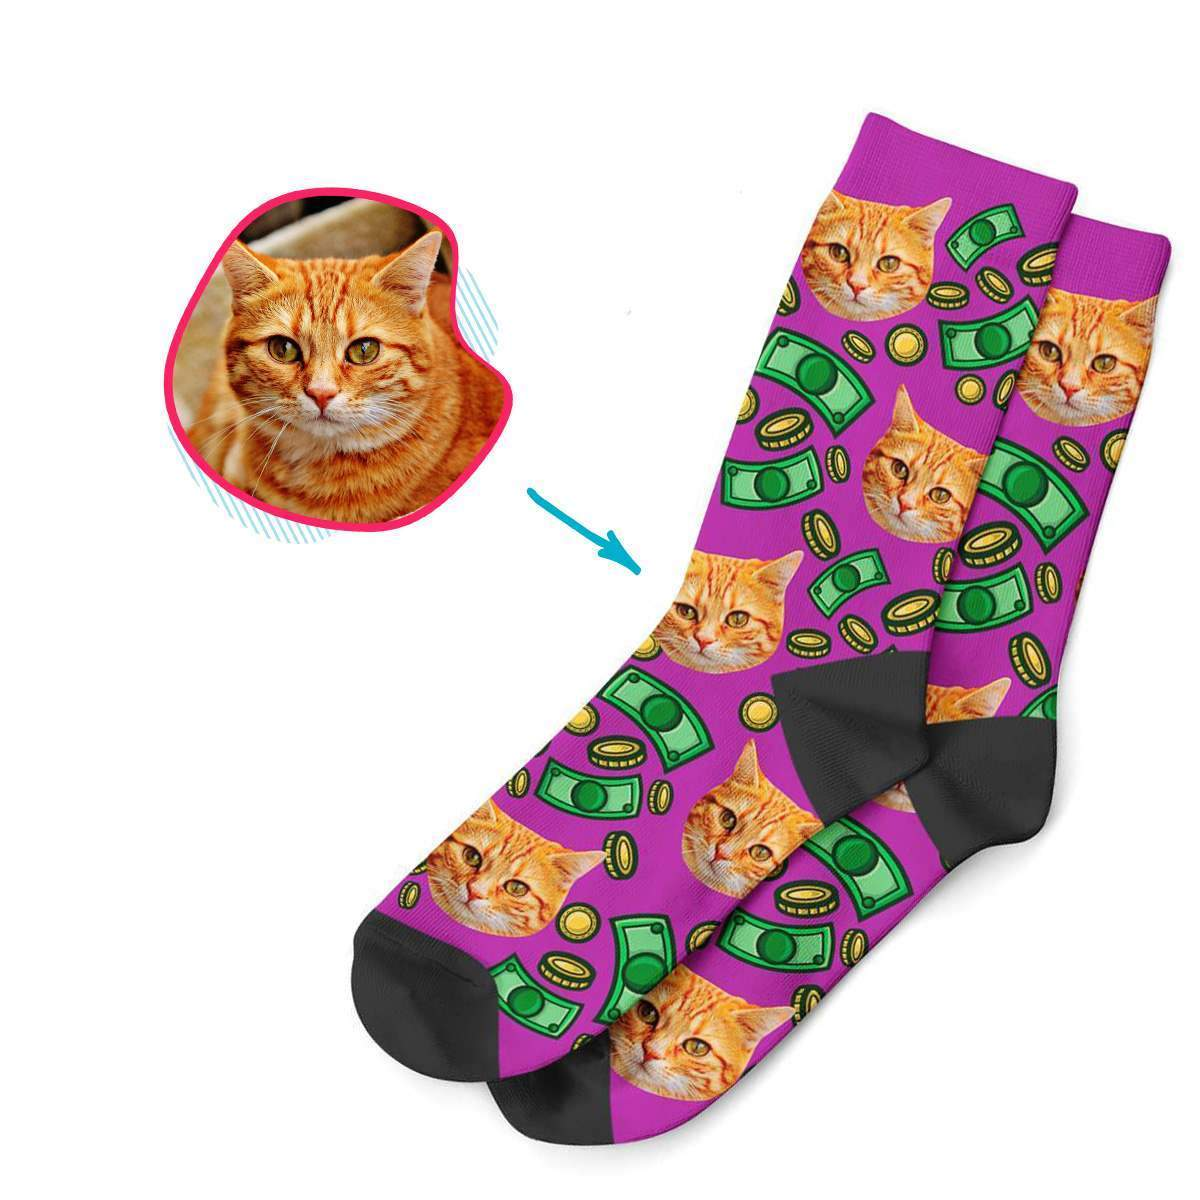 purple Money socks personalized with photo of face printed on them